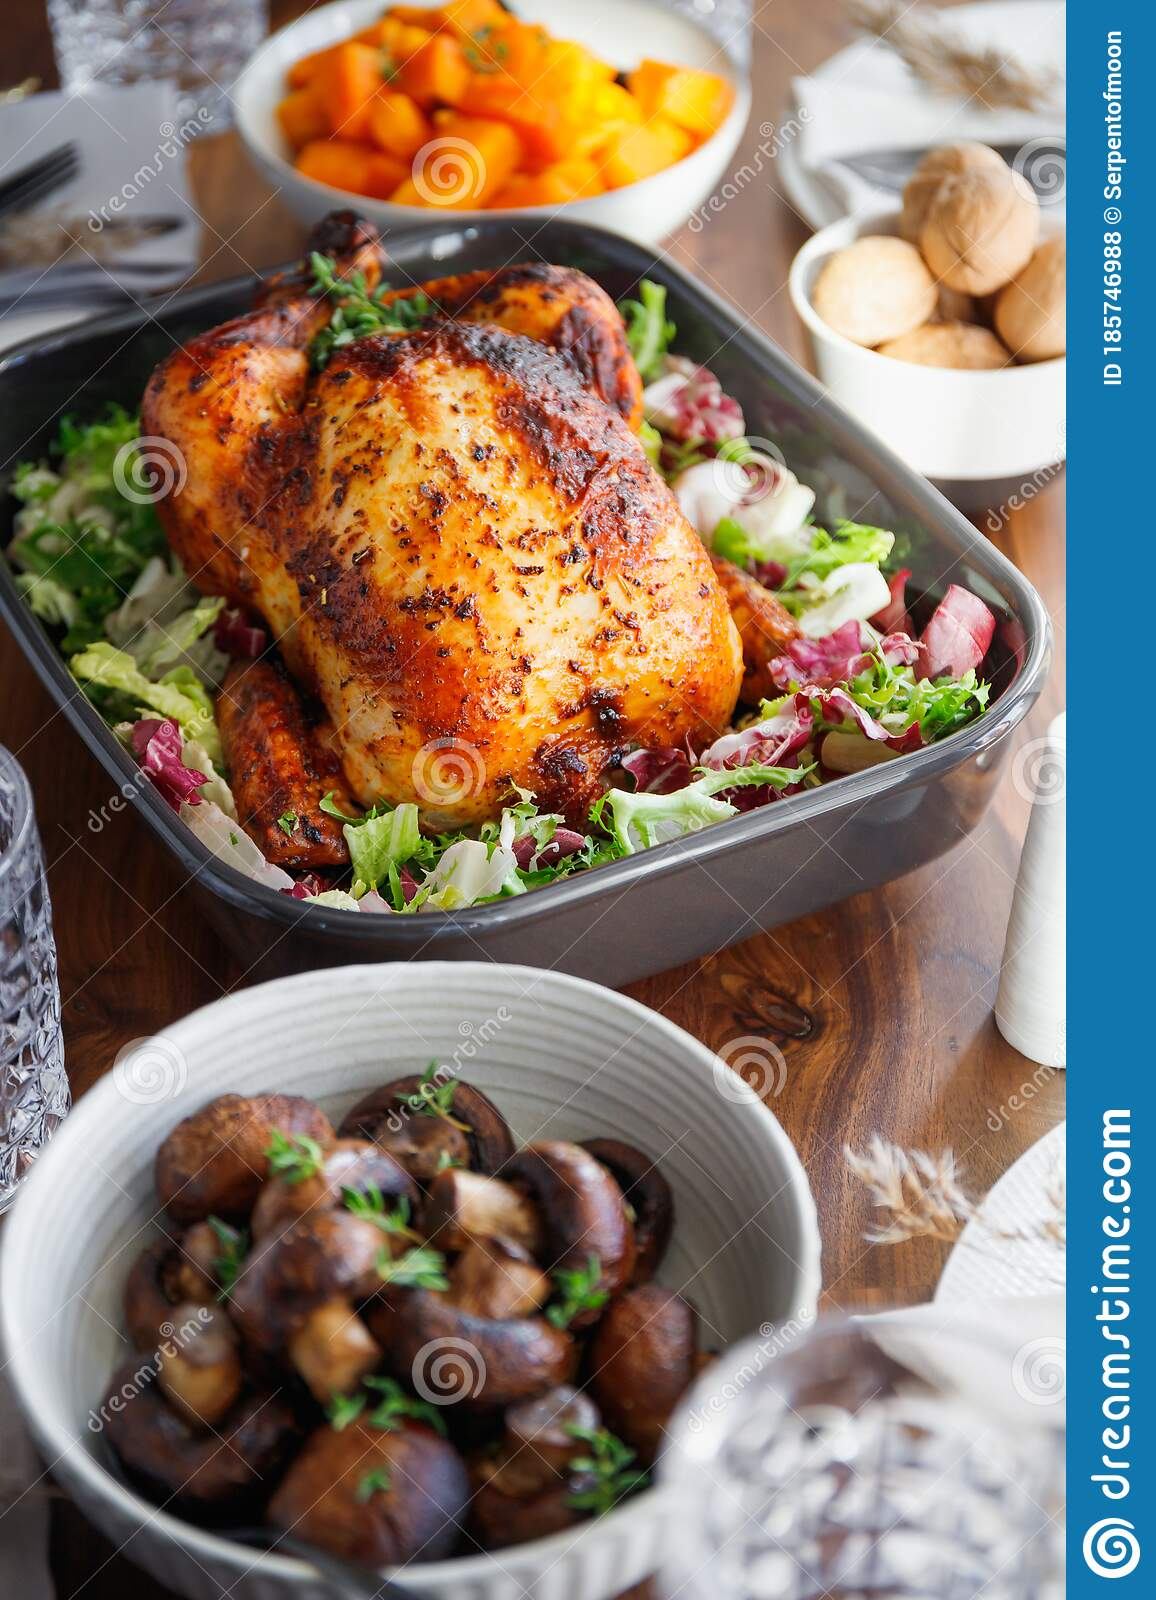 Festive Table With Whole Roasted Chicken Stock Photo ...